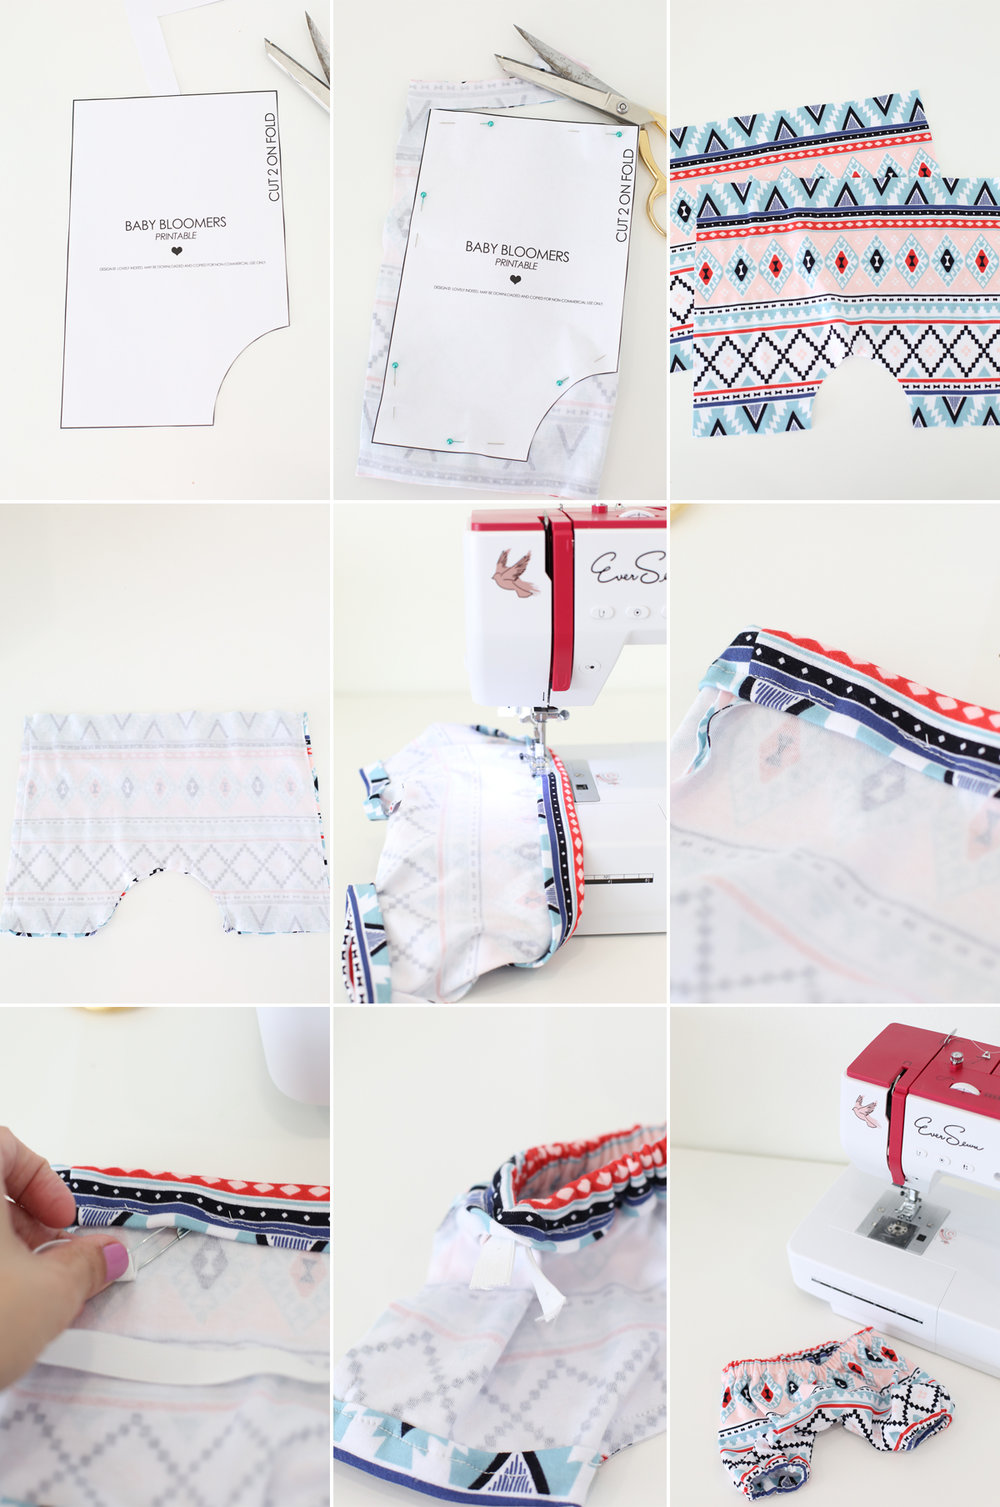 diy-baby-harem-bloomers-tutorial.jpg